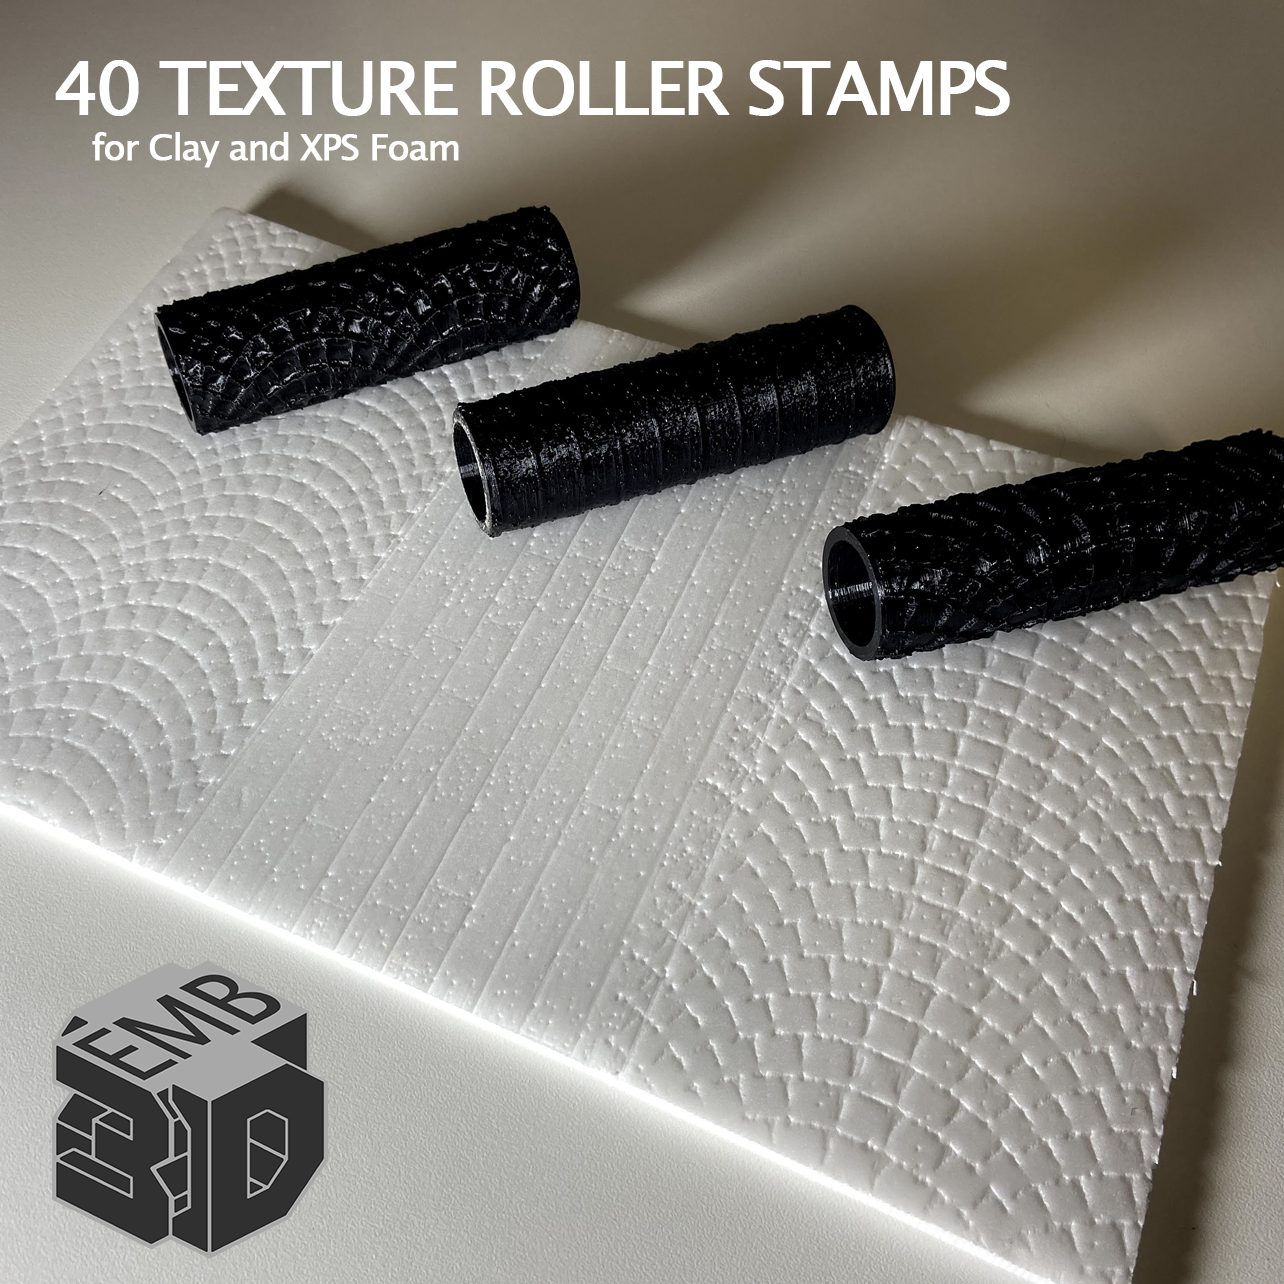 XPS6.png Download STL file 40 Clay and XPS Foam Texture Roller Stamp • 3D printer object, emboyd